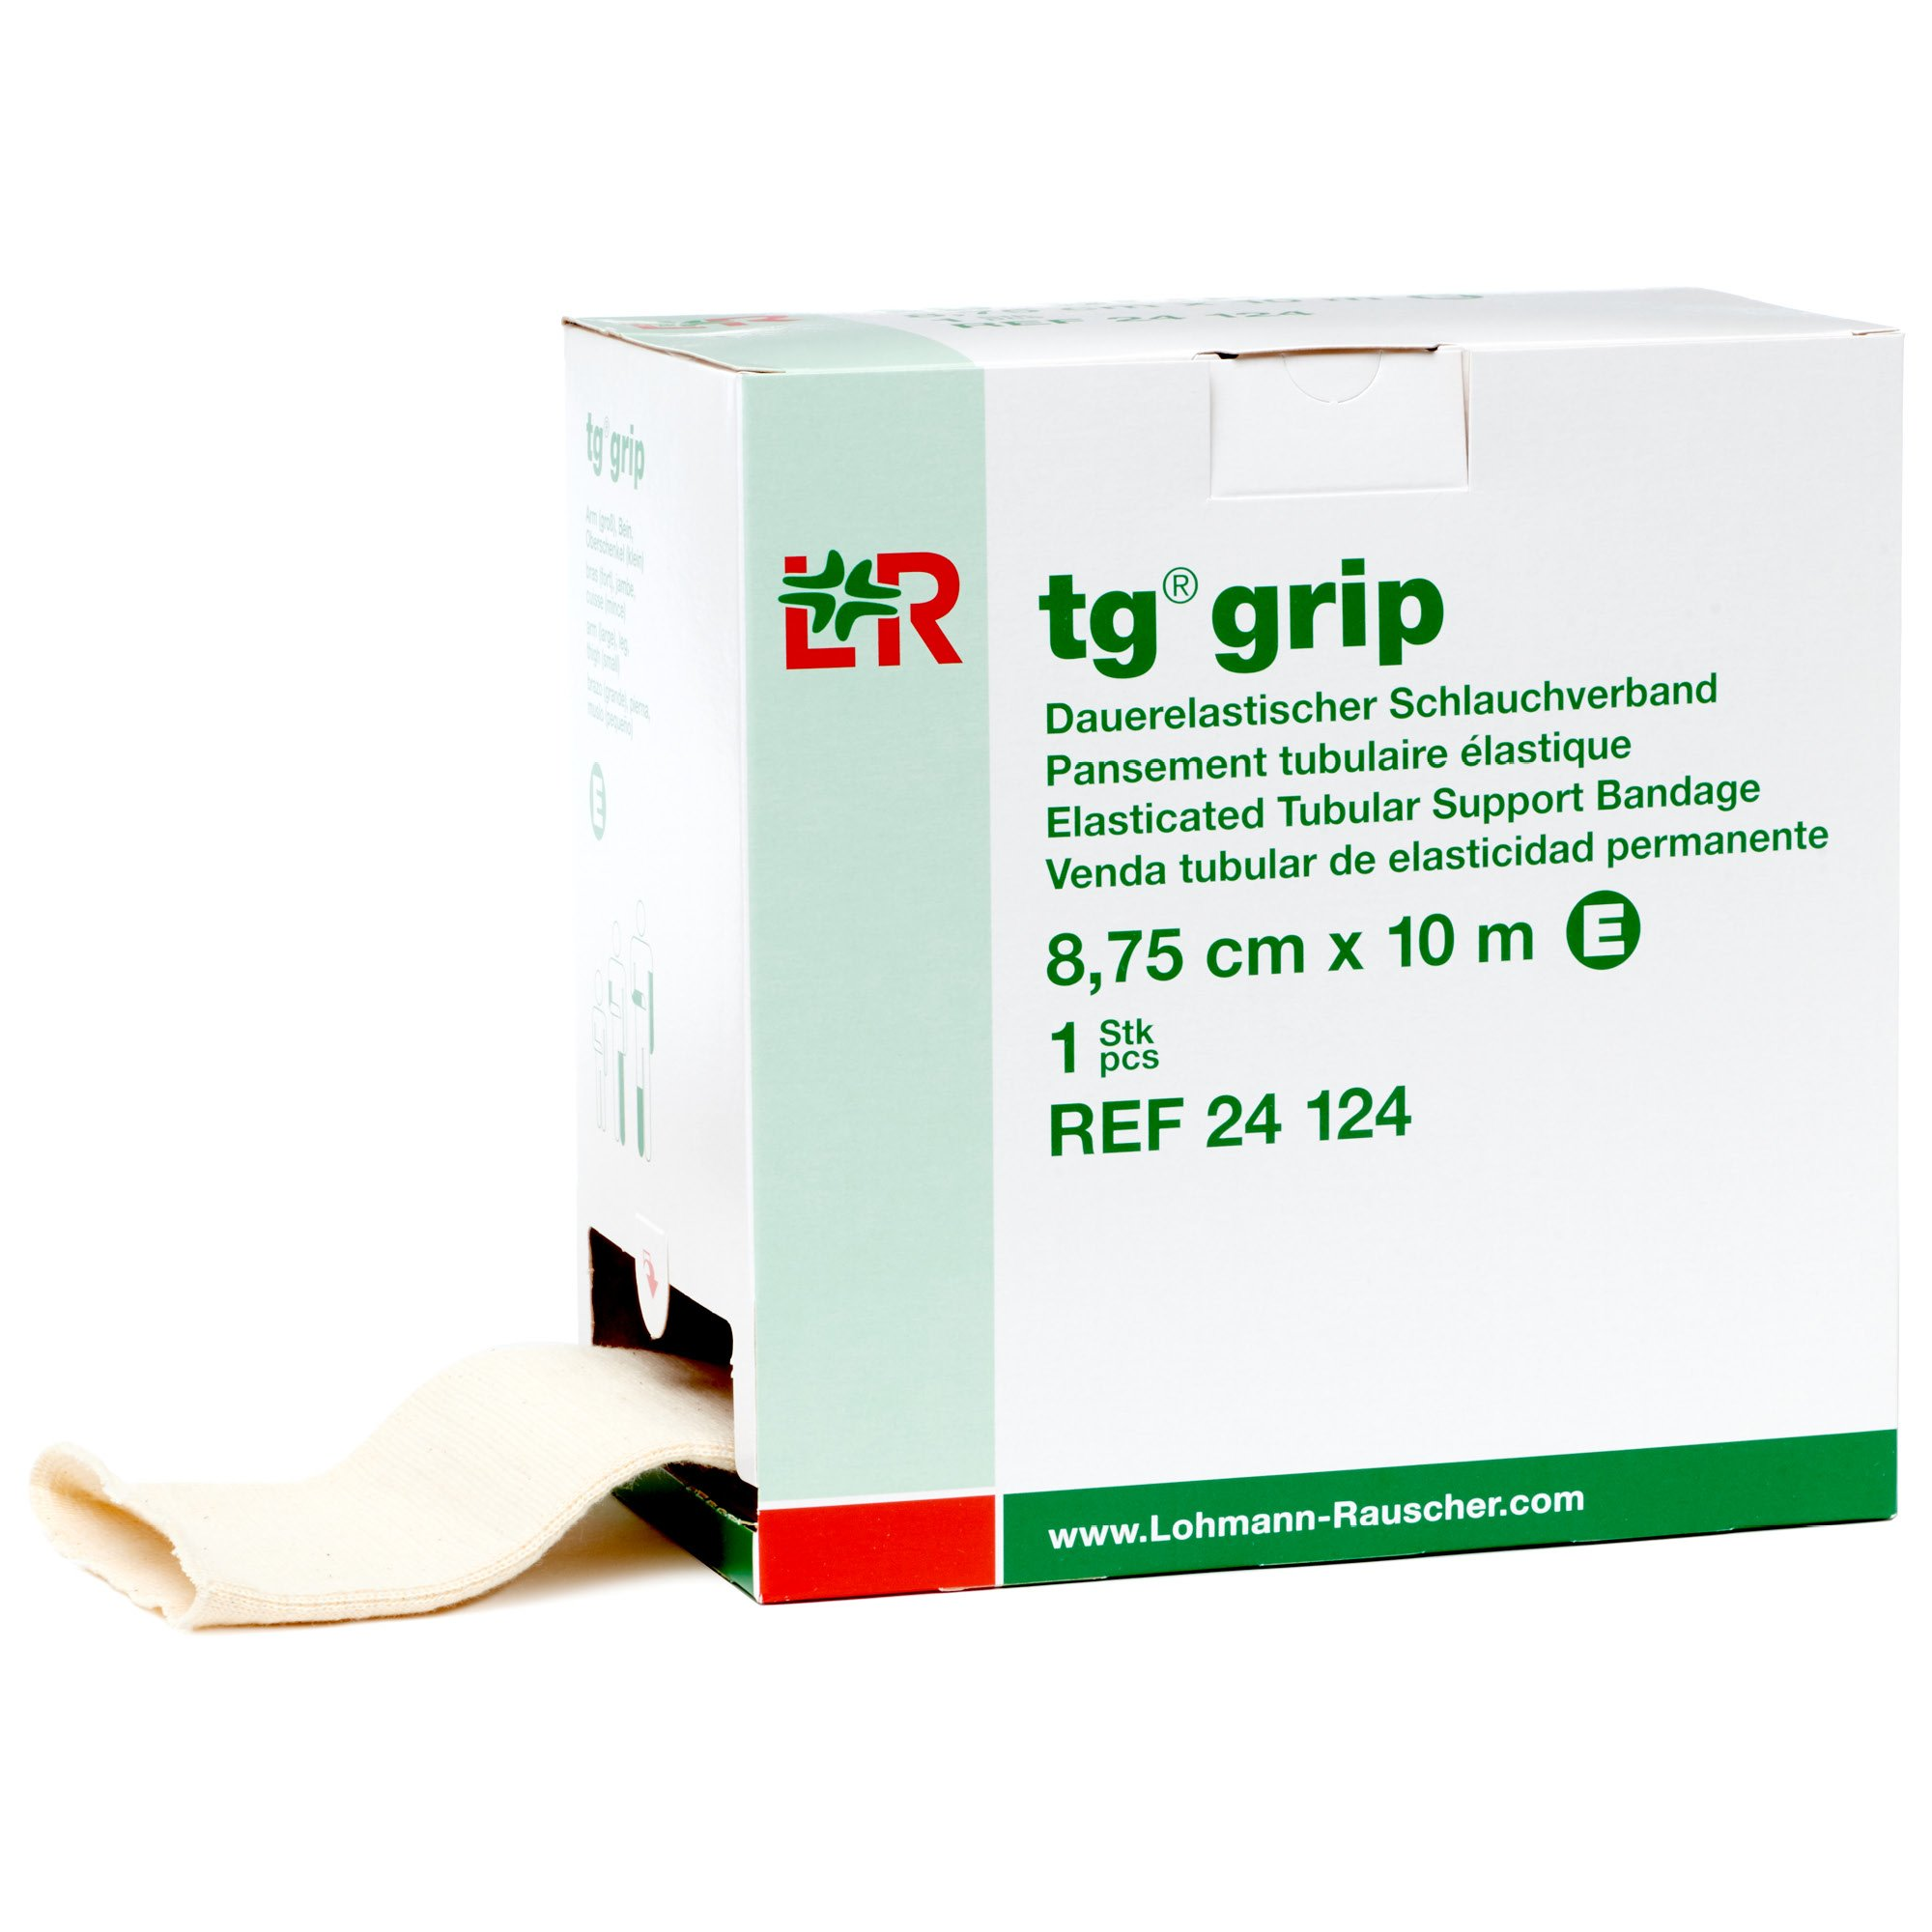 tg grip Elastic Tubular Compression Bandage, Seamless Tube Stockinette Wrap for Retention, Lymphedema, & Swelling, 85% Cotton, Washable & Reusable, Size E by Lohmann&Rauscher